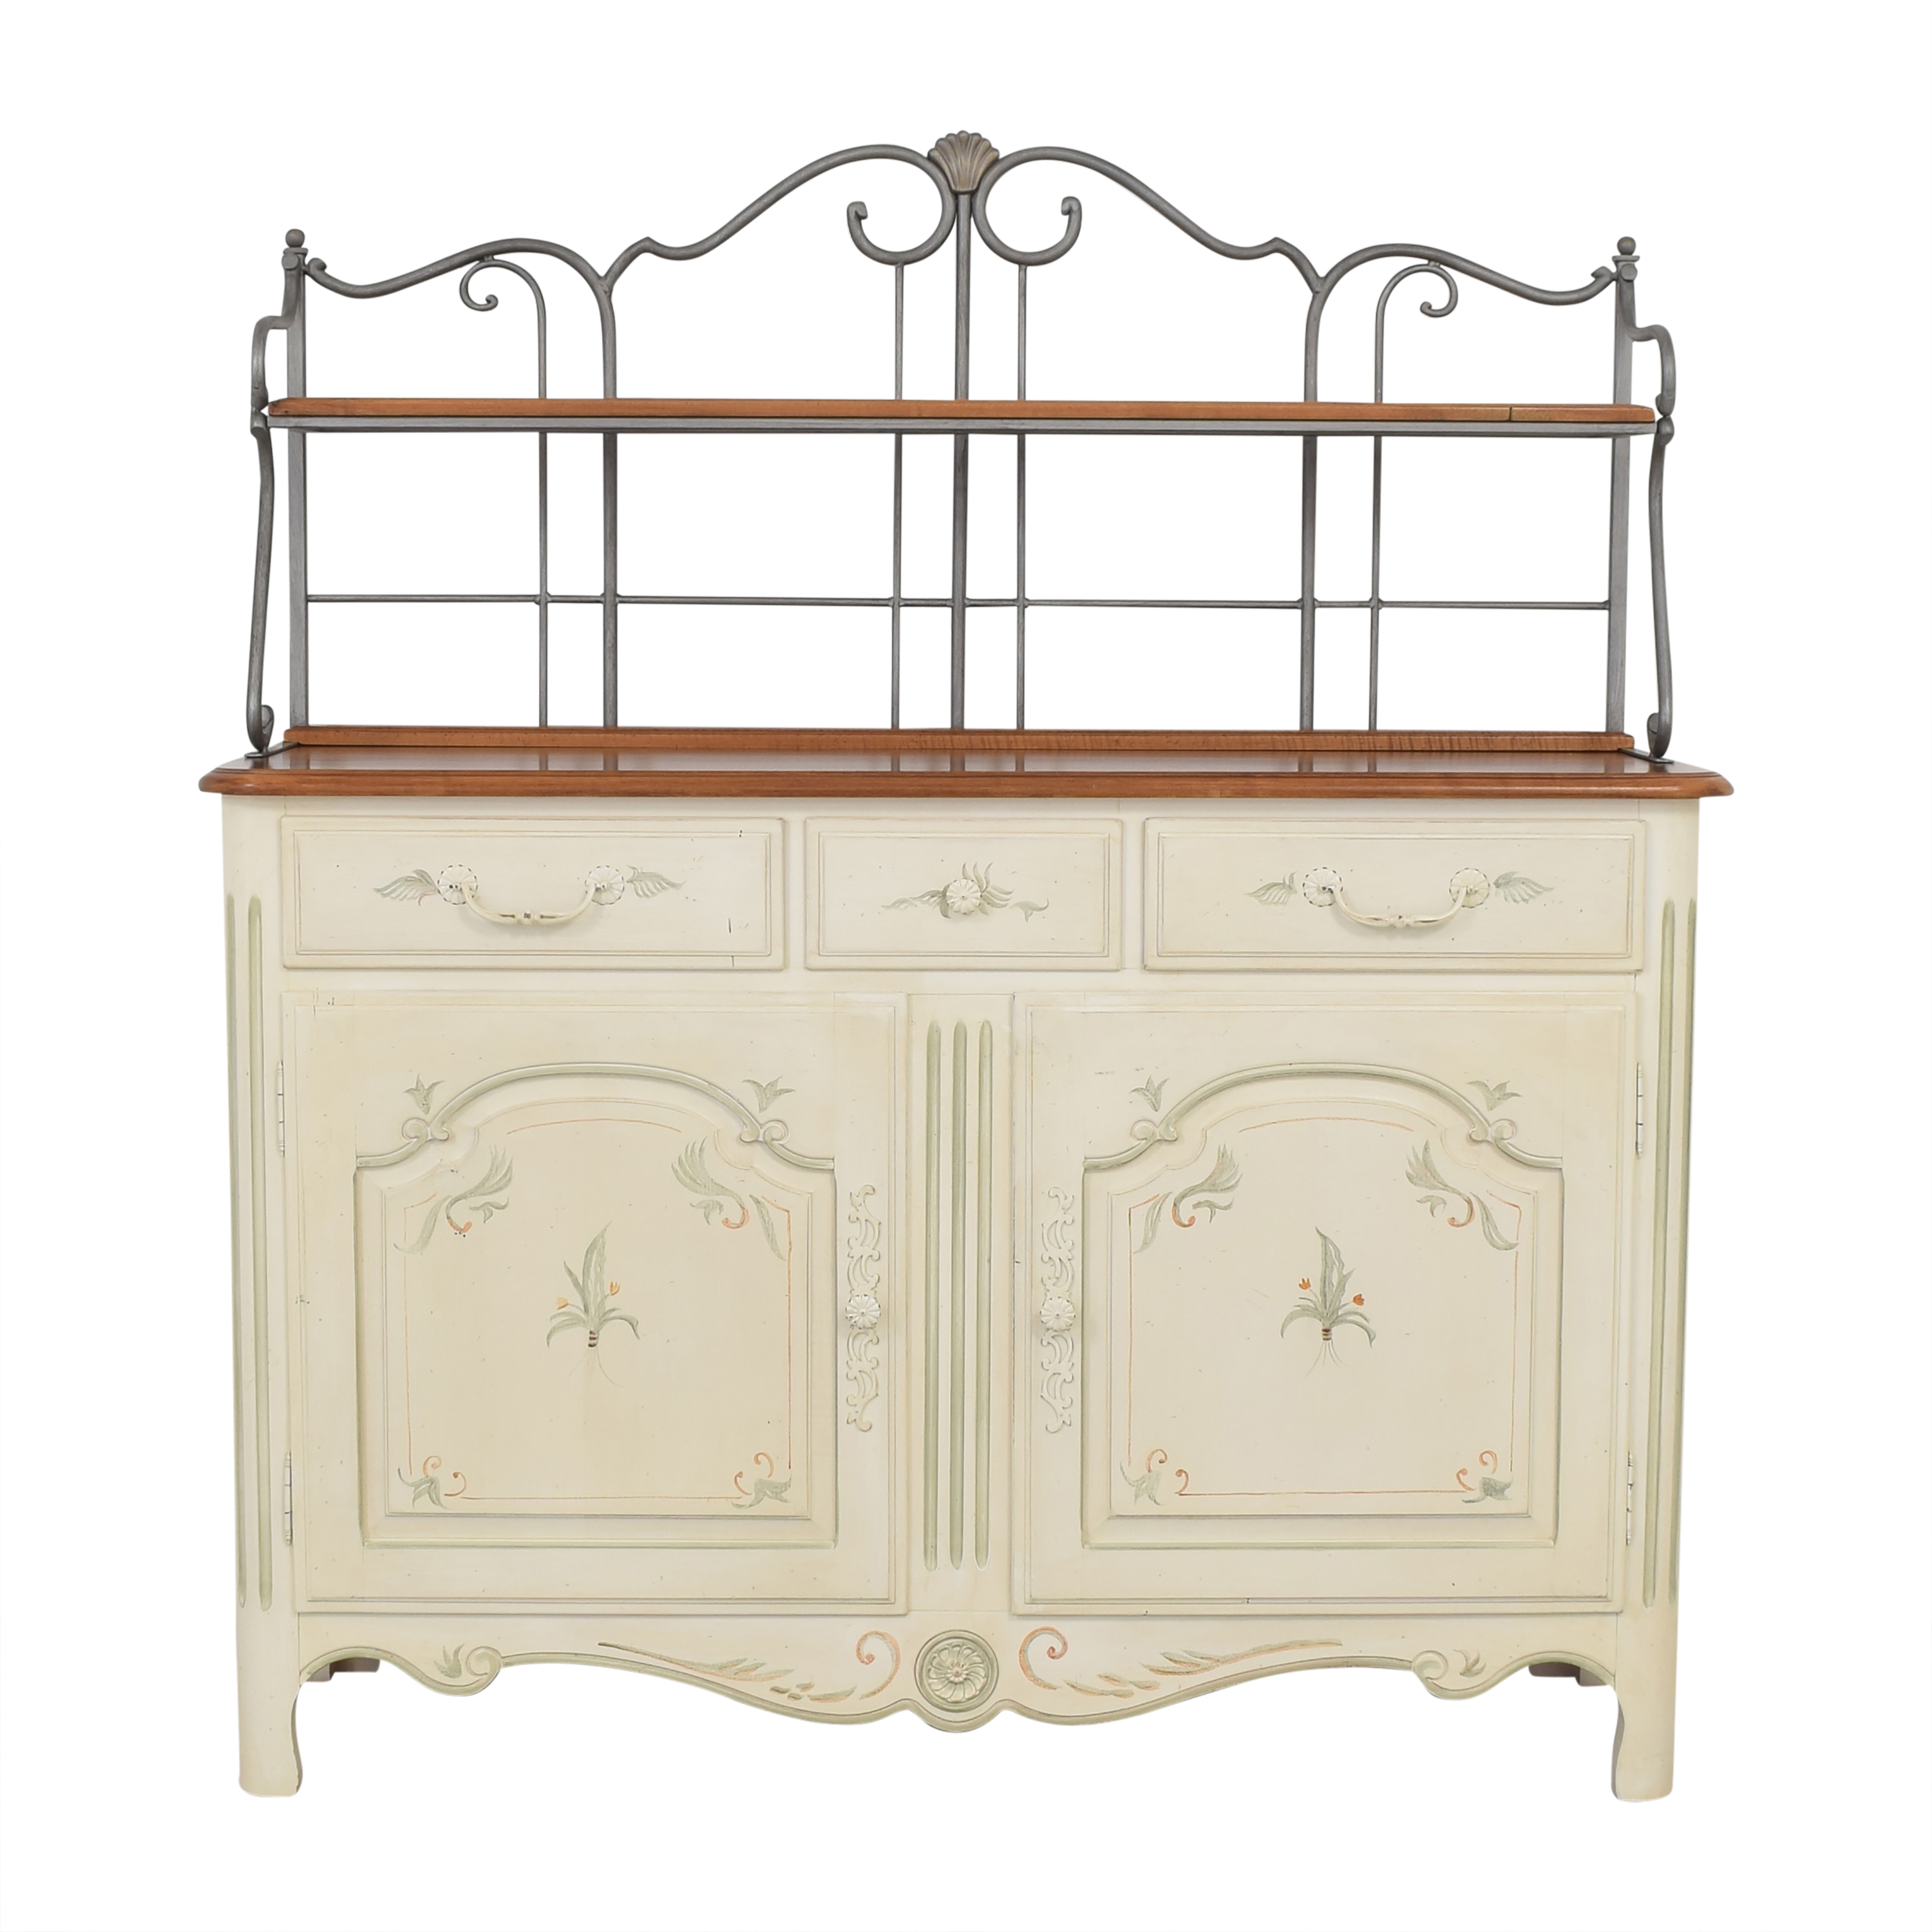 Ethan Allen Ethan Allen French Country Sideboard Baker's Rack on sale